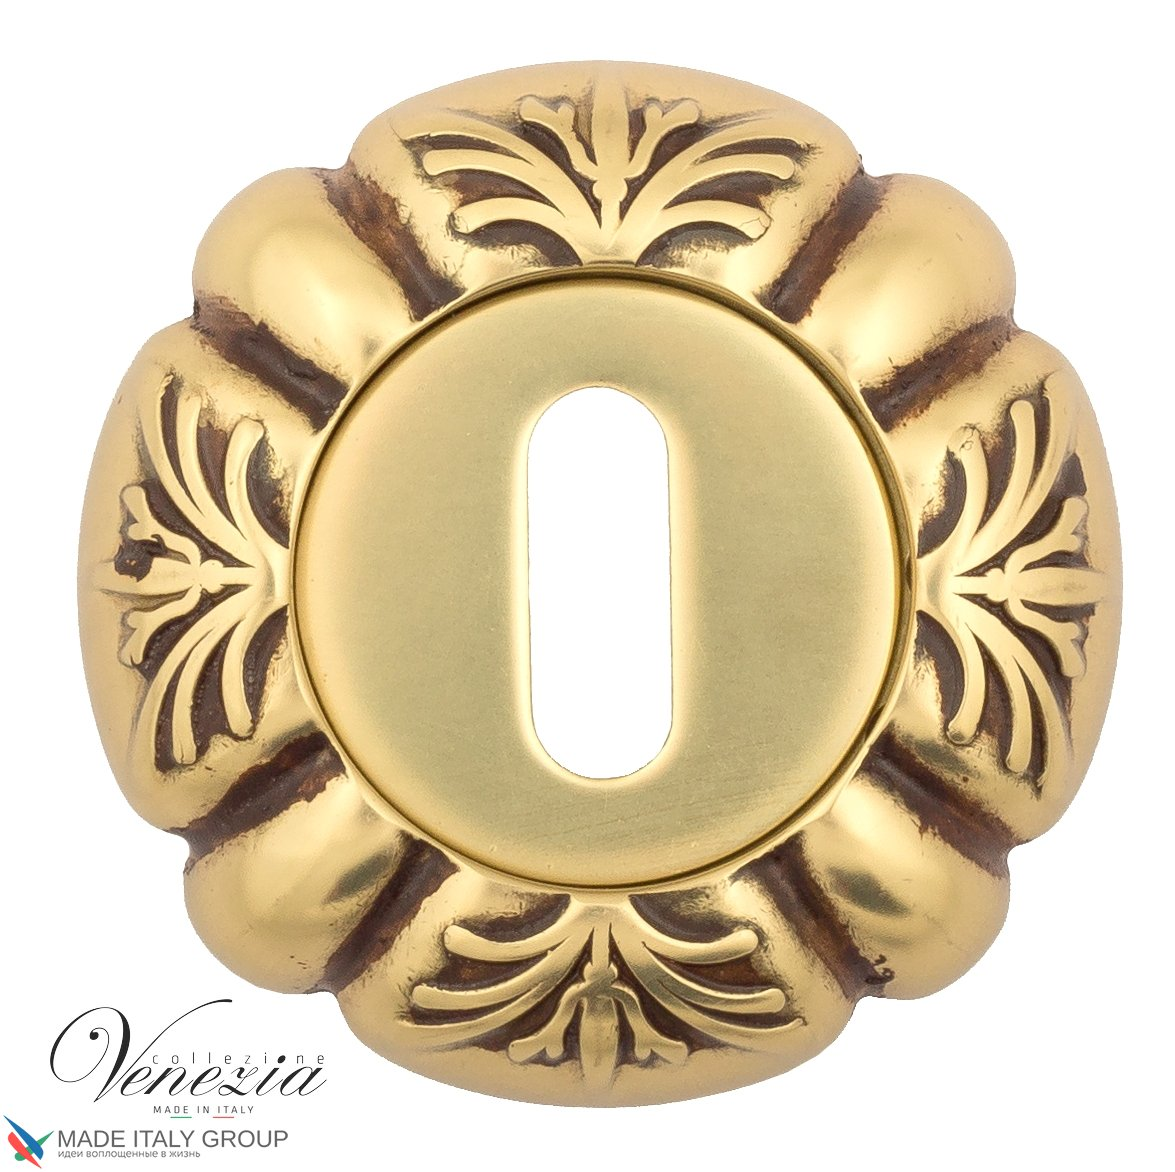 Keyhole Escutcheon Venezia KEY-1 D5 French Gold + Brown